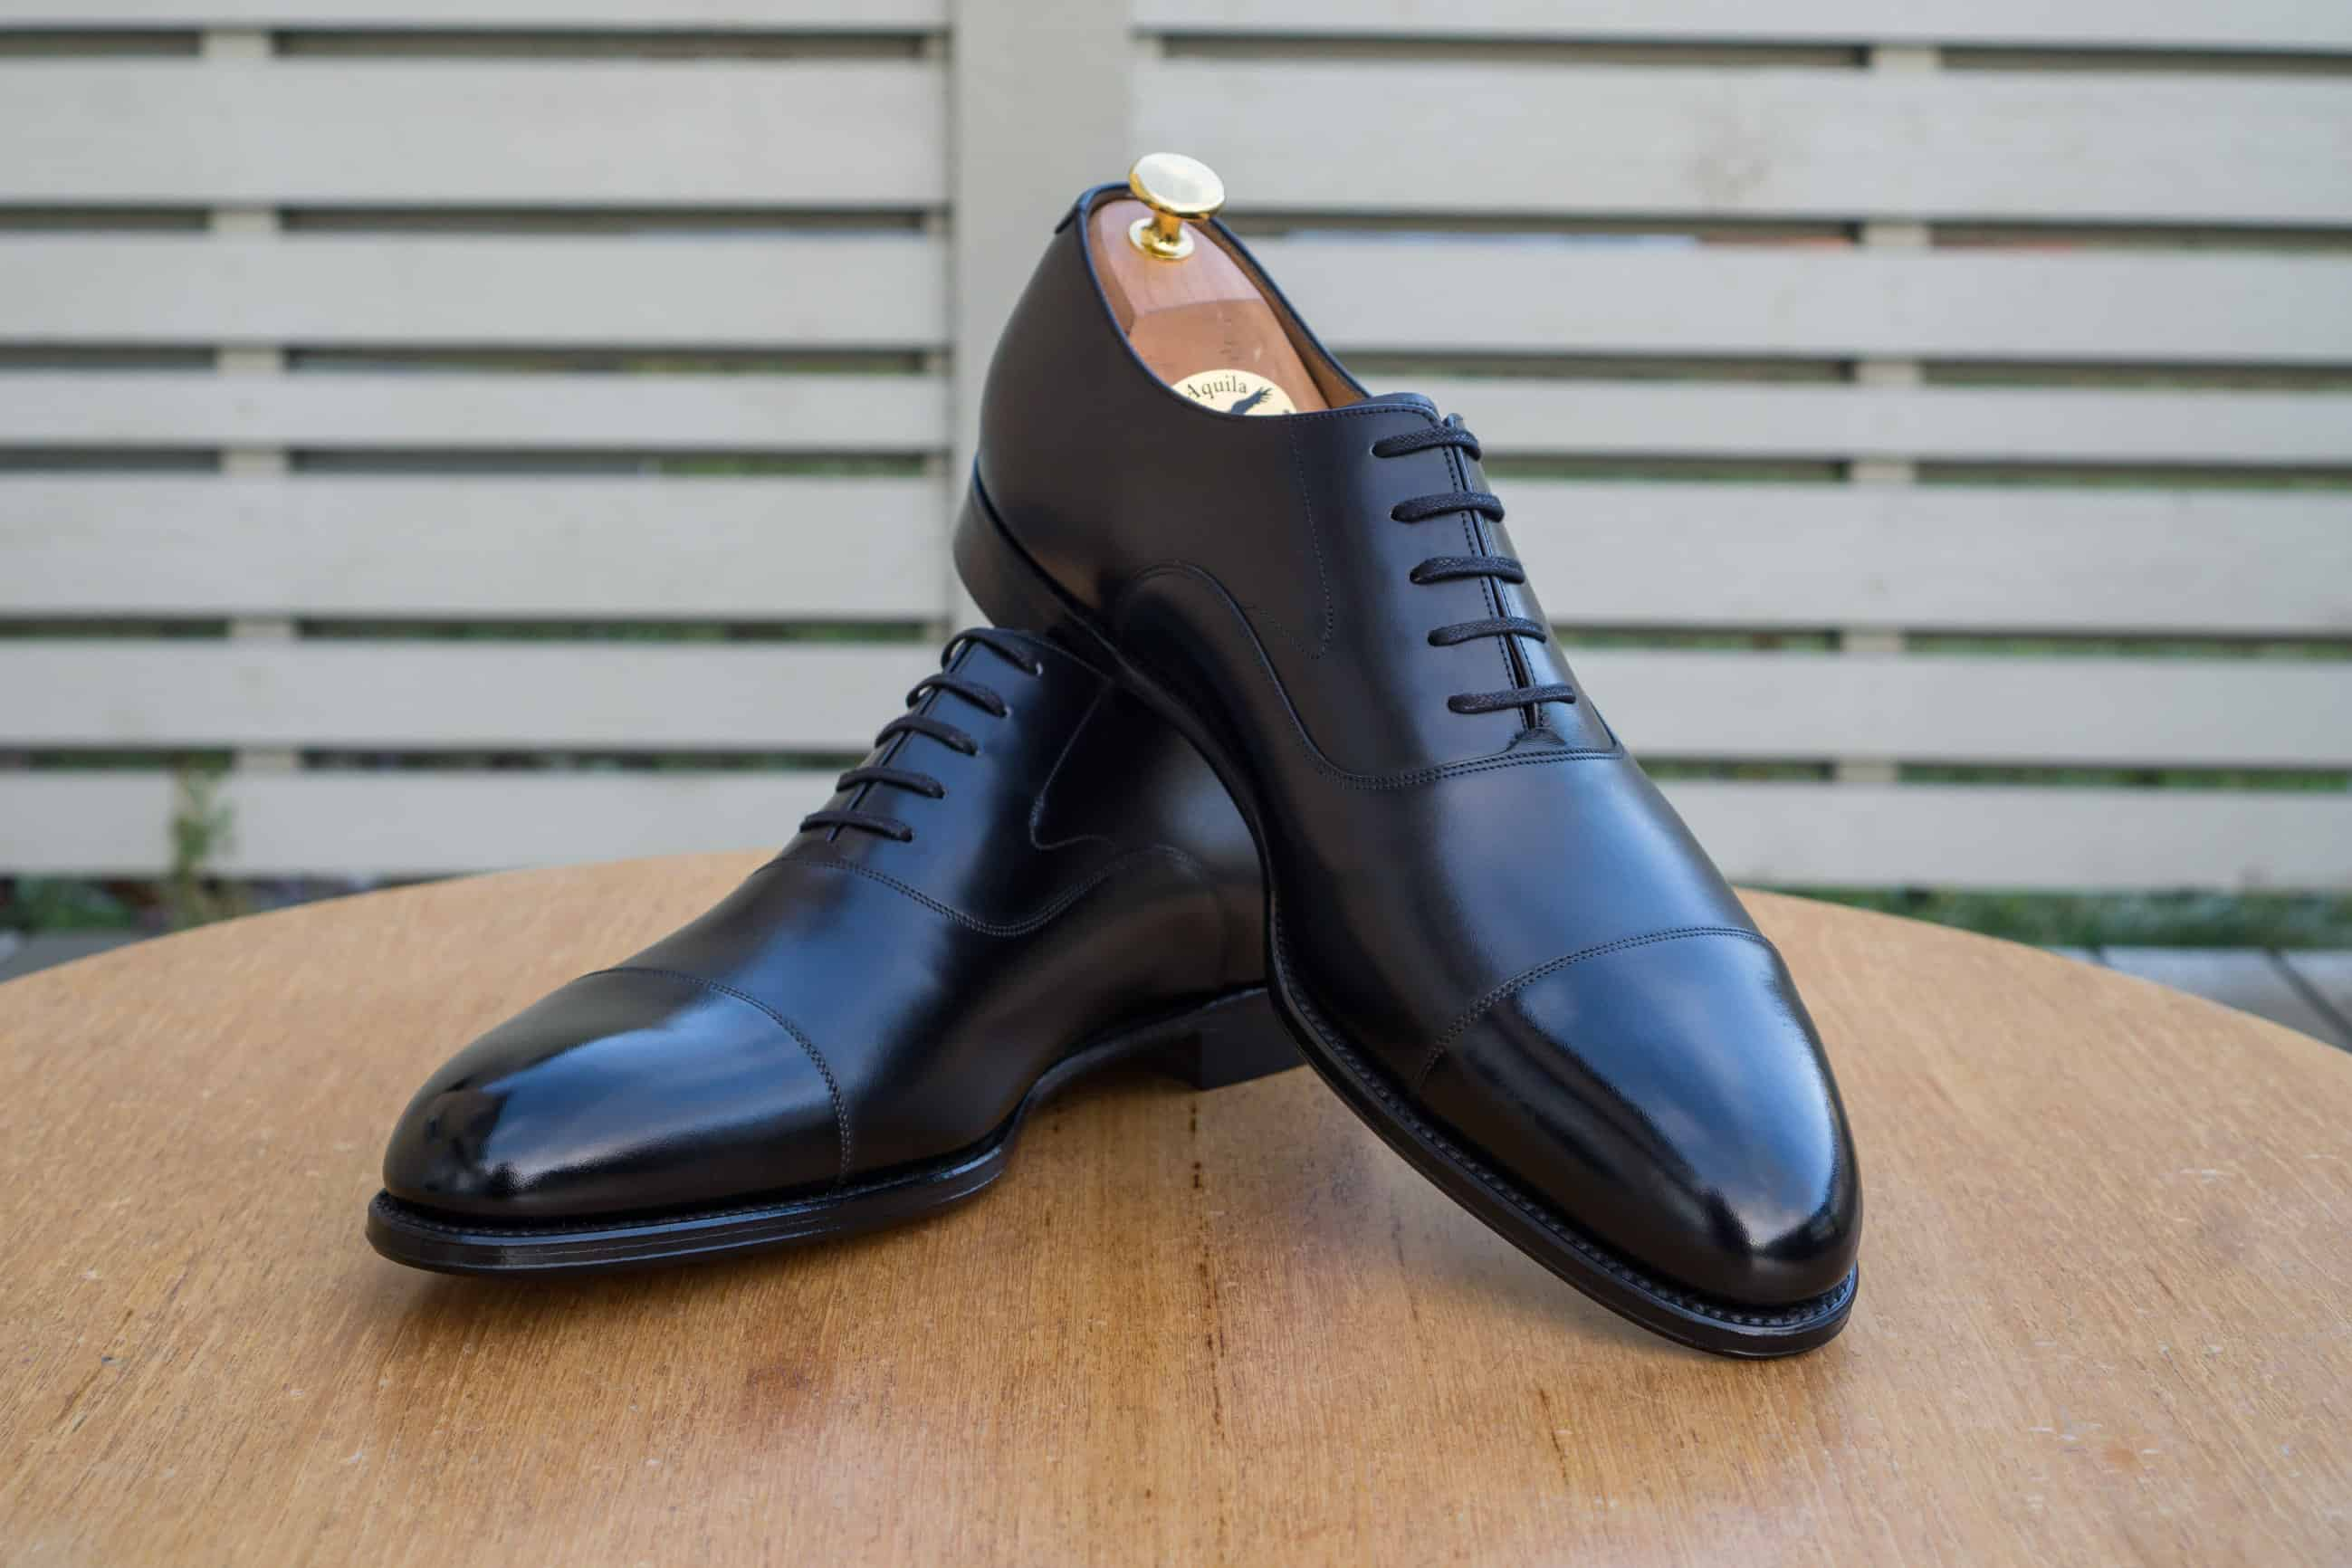 new arrival 05ef2 5ce6c Review – Loake 1880 Export Grade Hanover Onyx Black ...